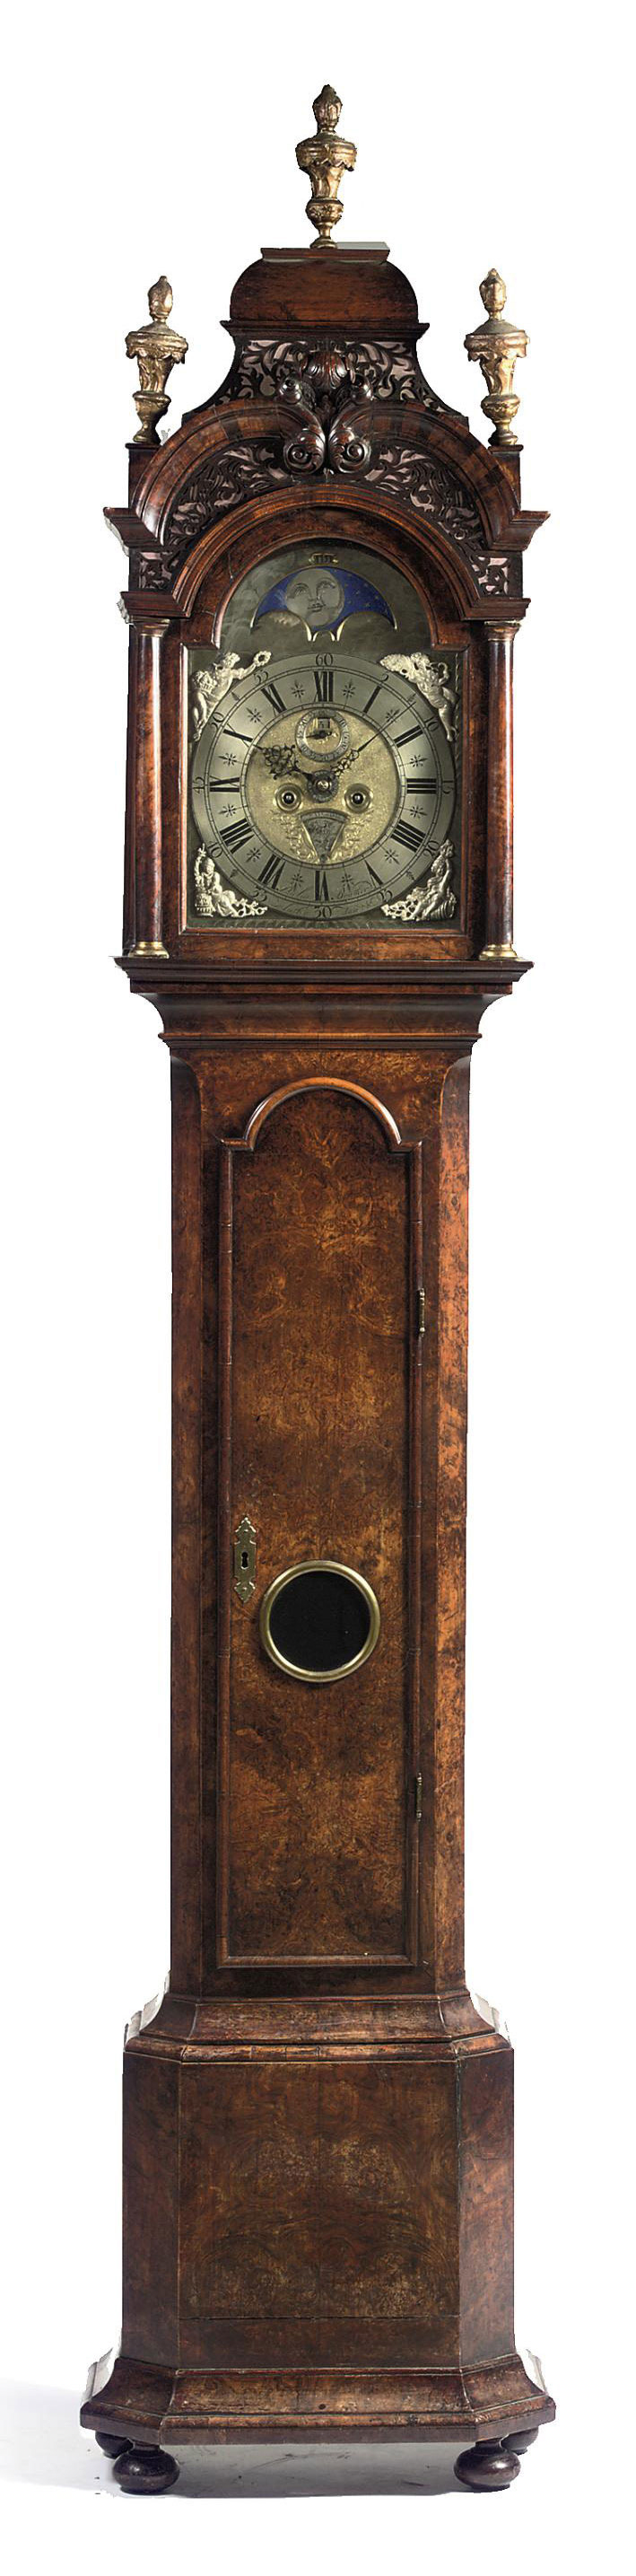 A DUTCH WALNUT AND BURR WALNUT LONGCASE CLOCK